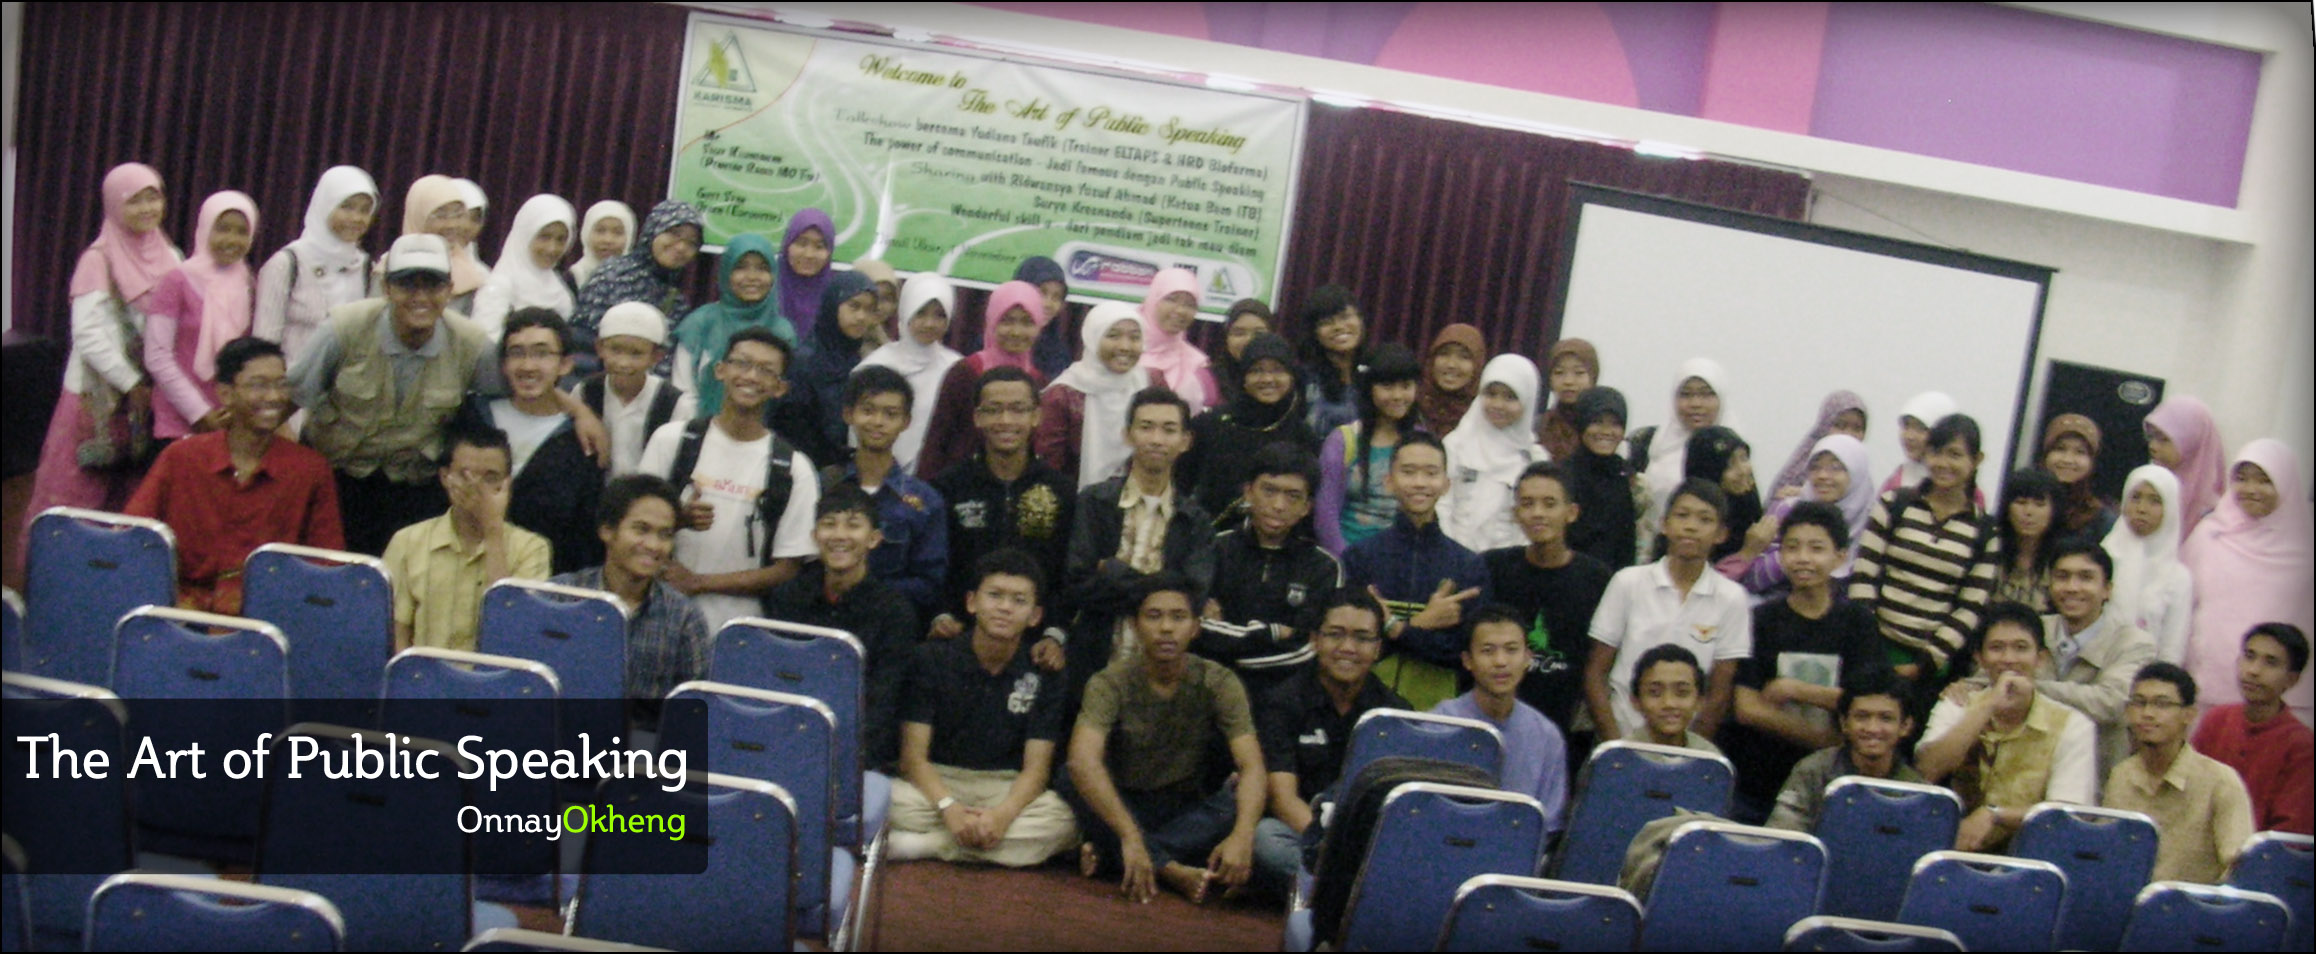 Peserta The Art of Public Speaking